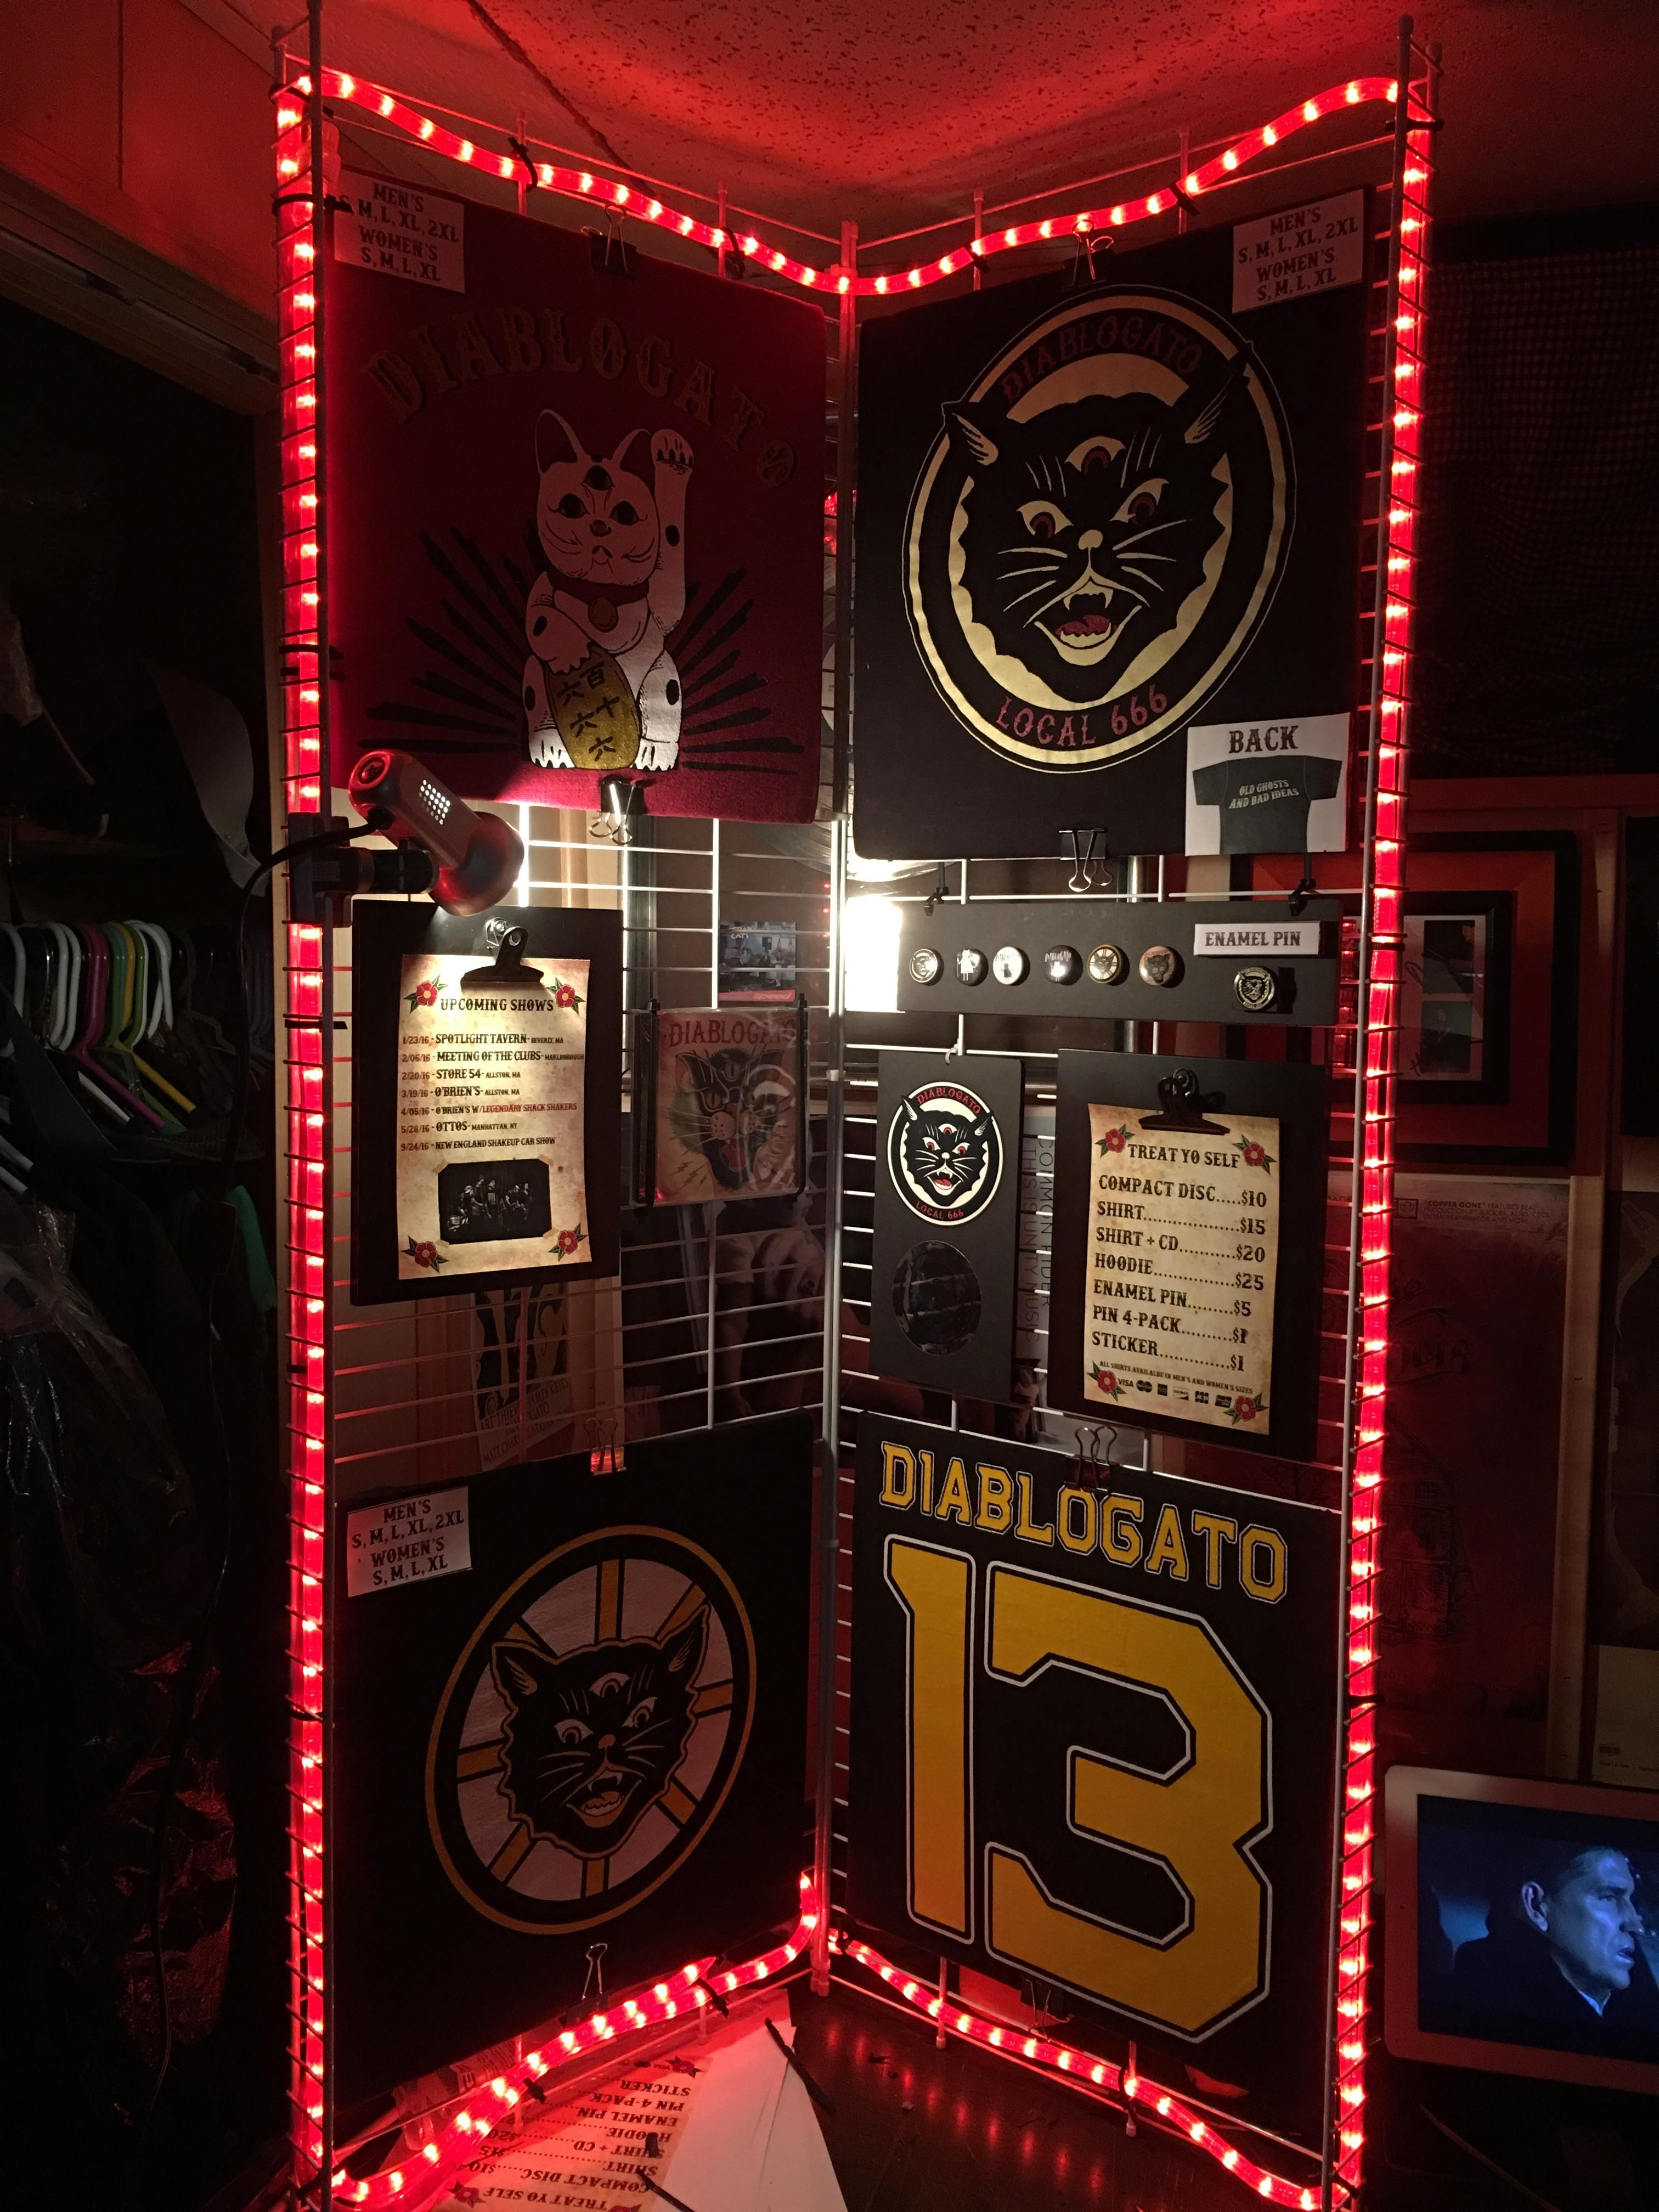 Built A New Merch Display For My Band